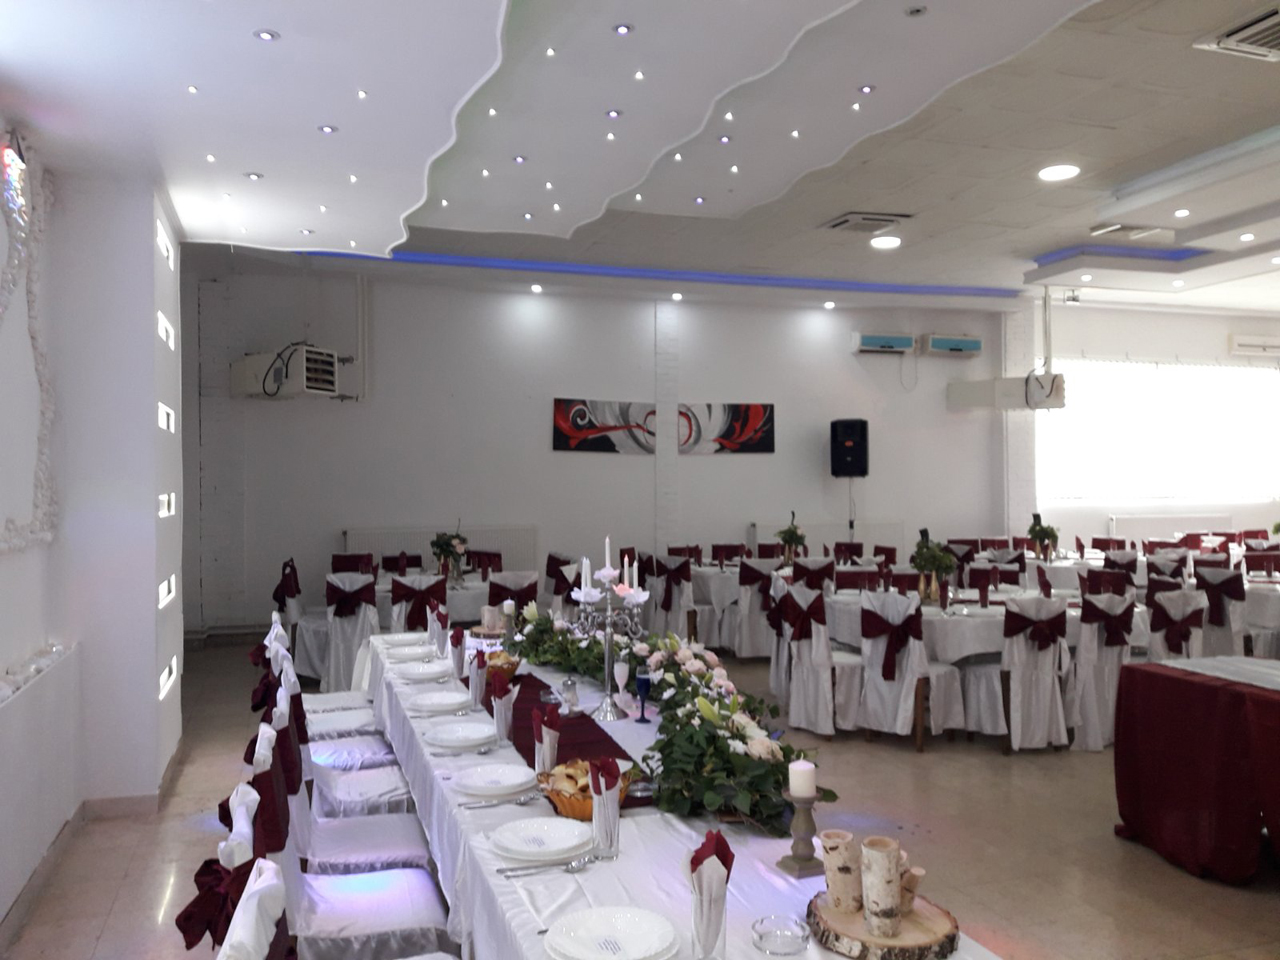 GRAND HALL KACAREVO AND CAFFE GRILL TICINO Renting halls Pancevo - Photo 11